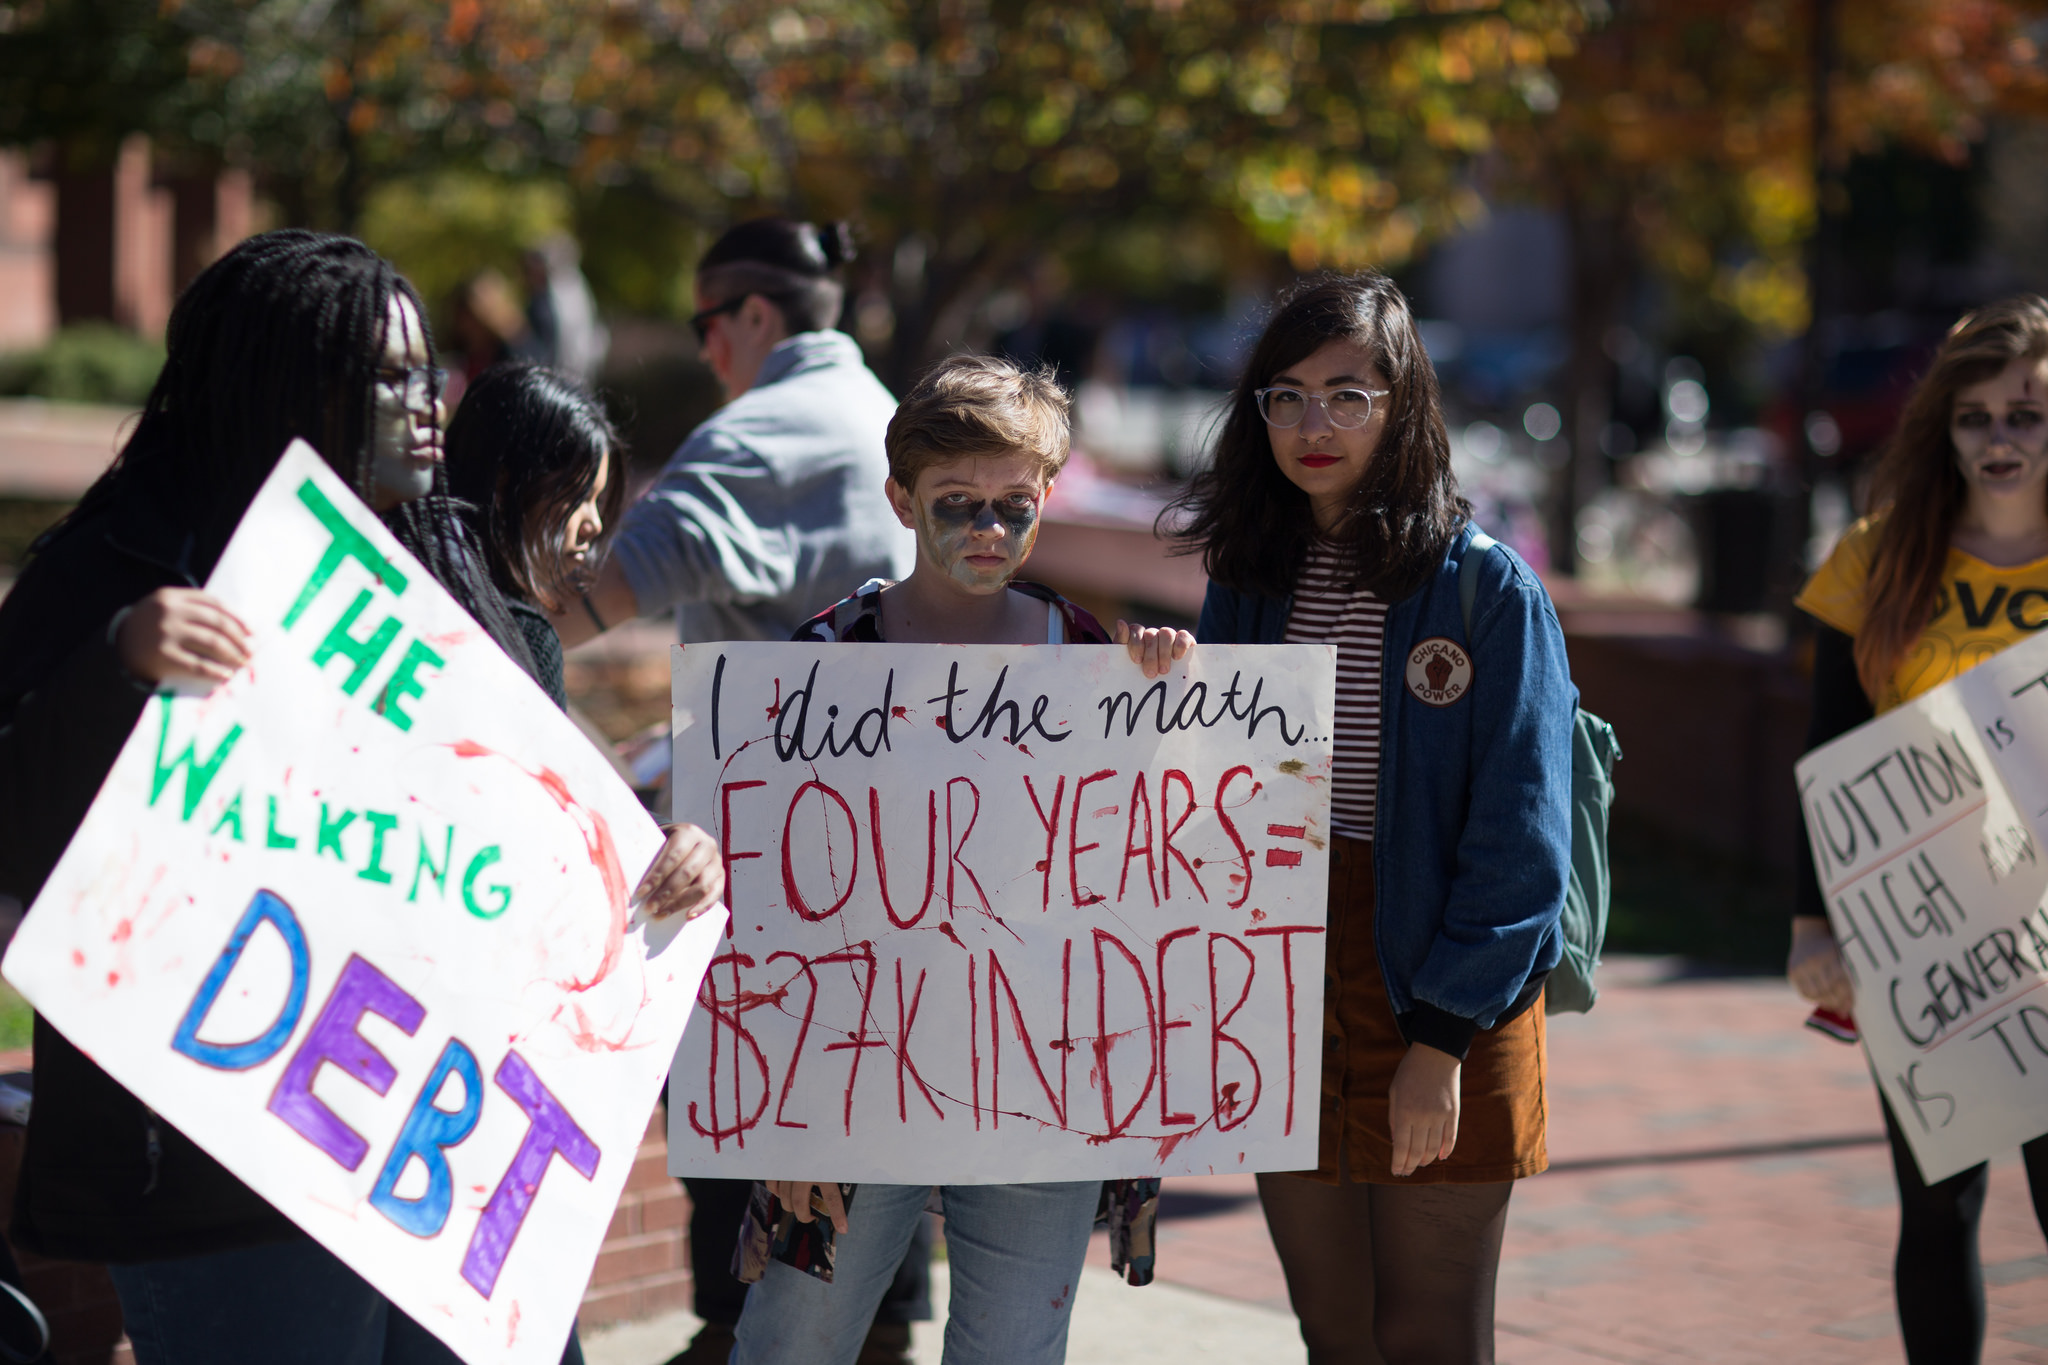 A 2015 student-debt protest. Photography by Tom Woodward. Image courtesy of Flickr.